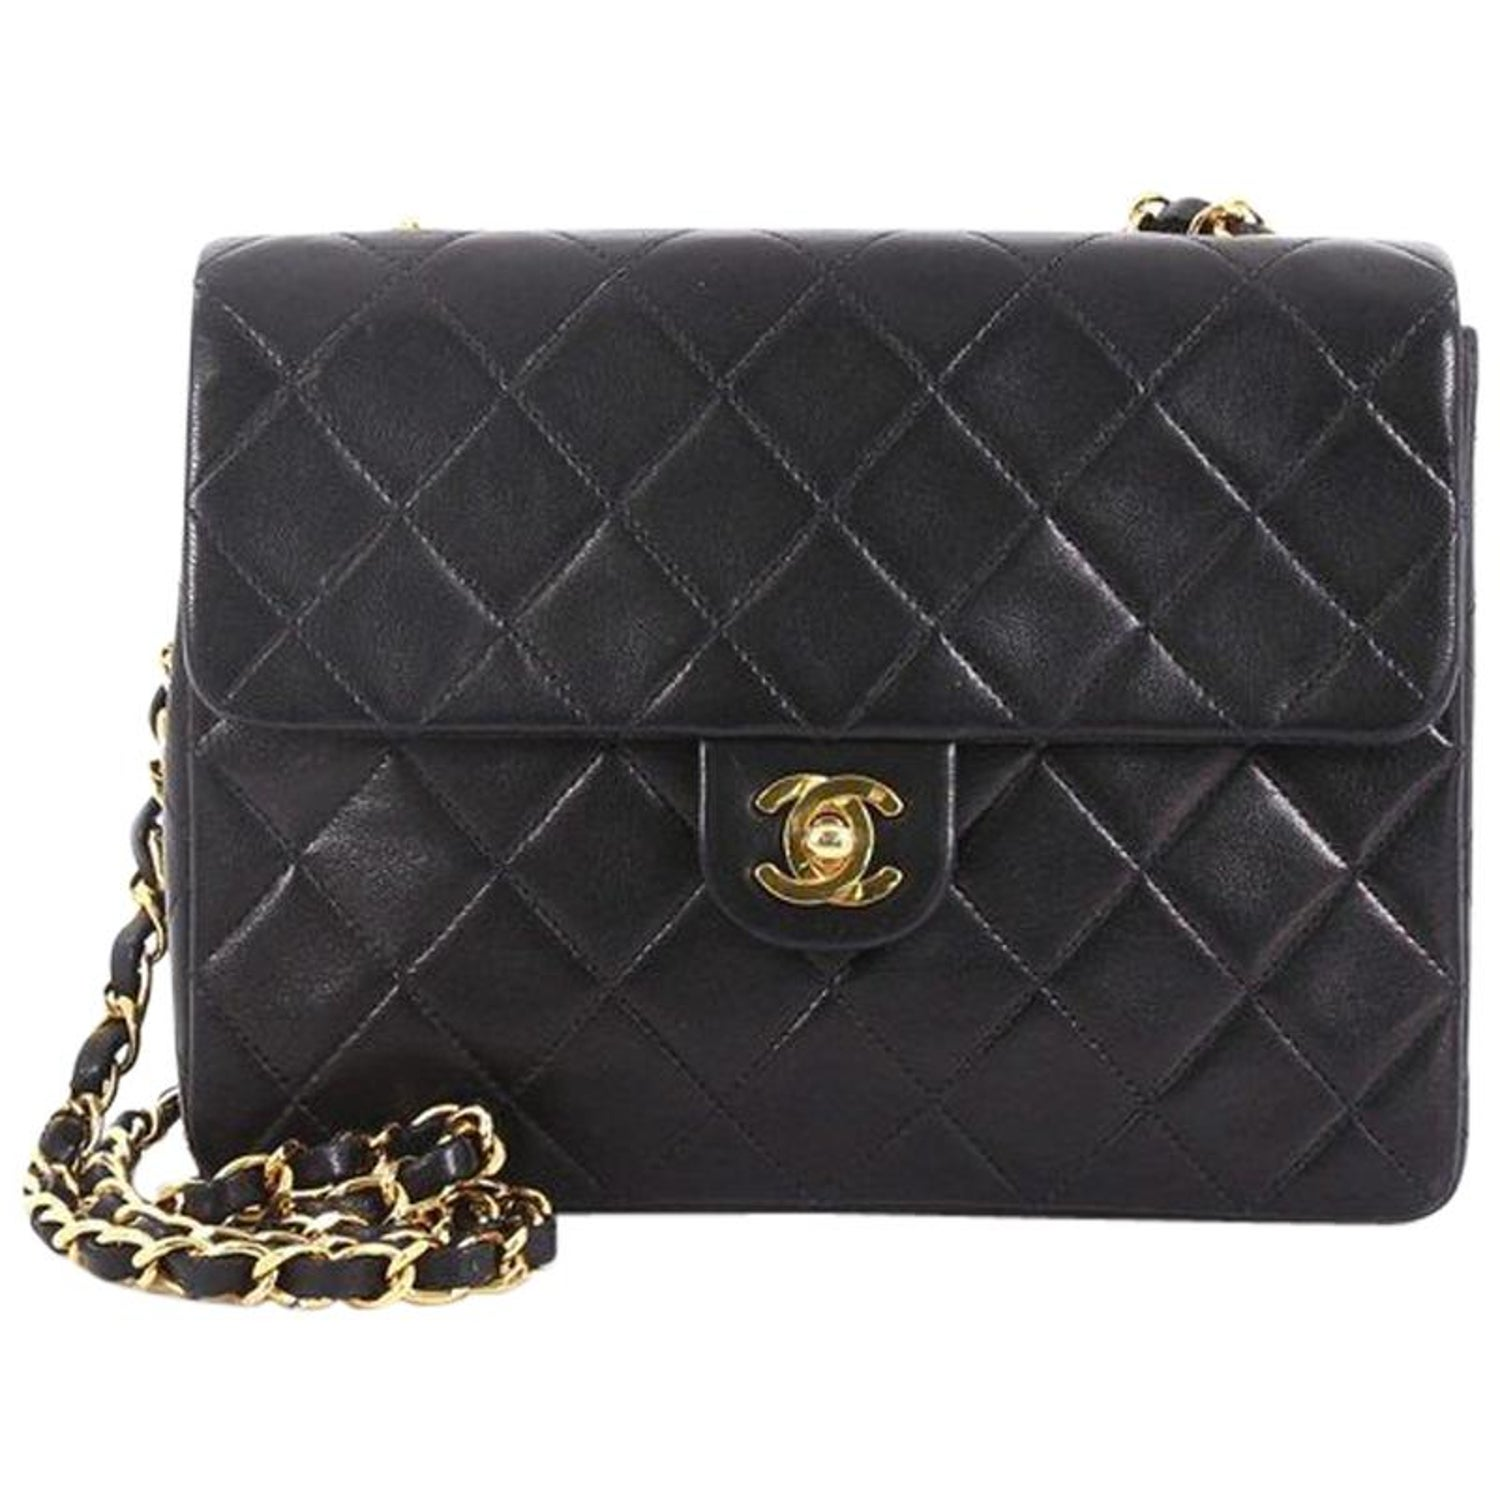 0e4f2023e8ed3f Chanel Vintage Square Classic Flap Bag Quilted Lambskin Small at 1stdibs